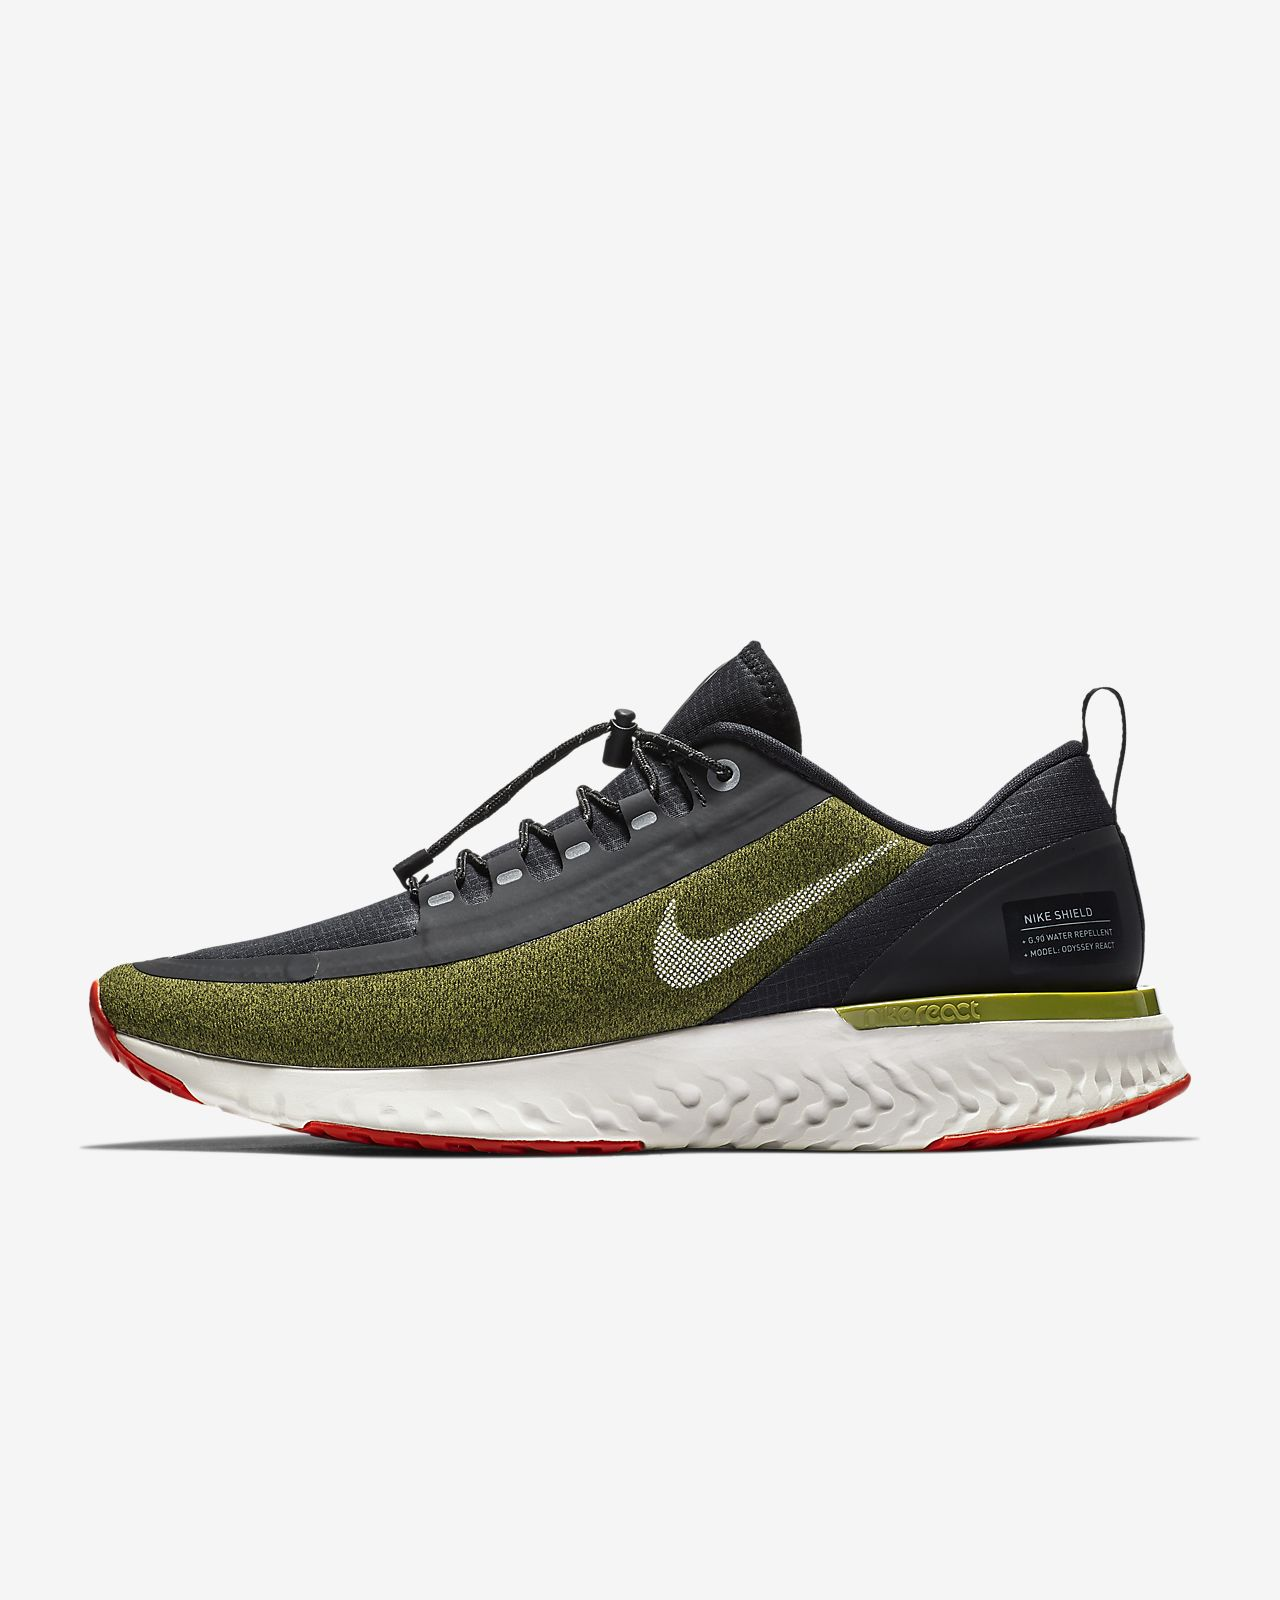 d6367546e7f8 Nike Odyssey React Shield Water-Repellent Men s Running Shoe. Nike ...